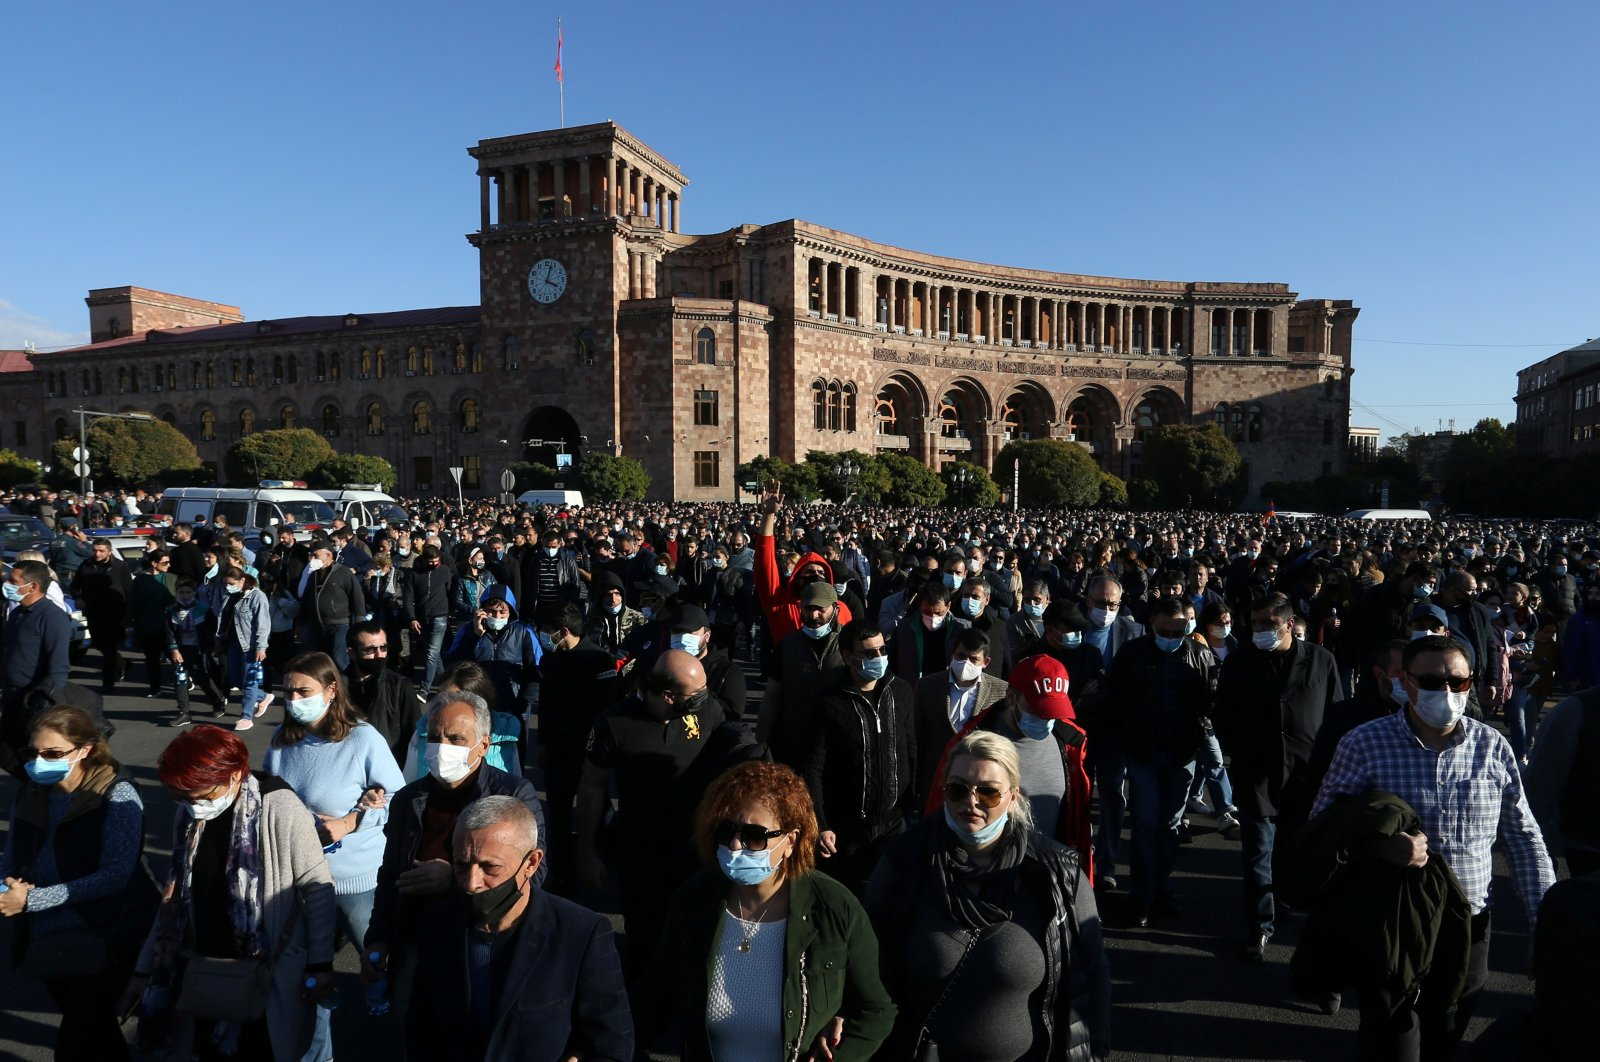 People attend an opposition rally to demand the resignation of Armenian Prime Minister Nikol Pashinian following the signing of a deal to end the military conflict over the Nagorno-Karabakh region, in Yerevan, Armenia November 11, 2020. (Vahram Baghdasaryan / Photolure via Reuters)